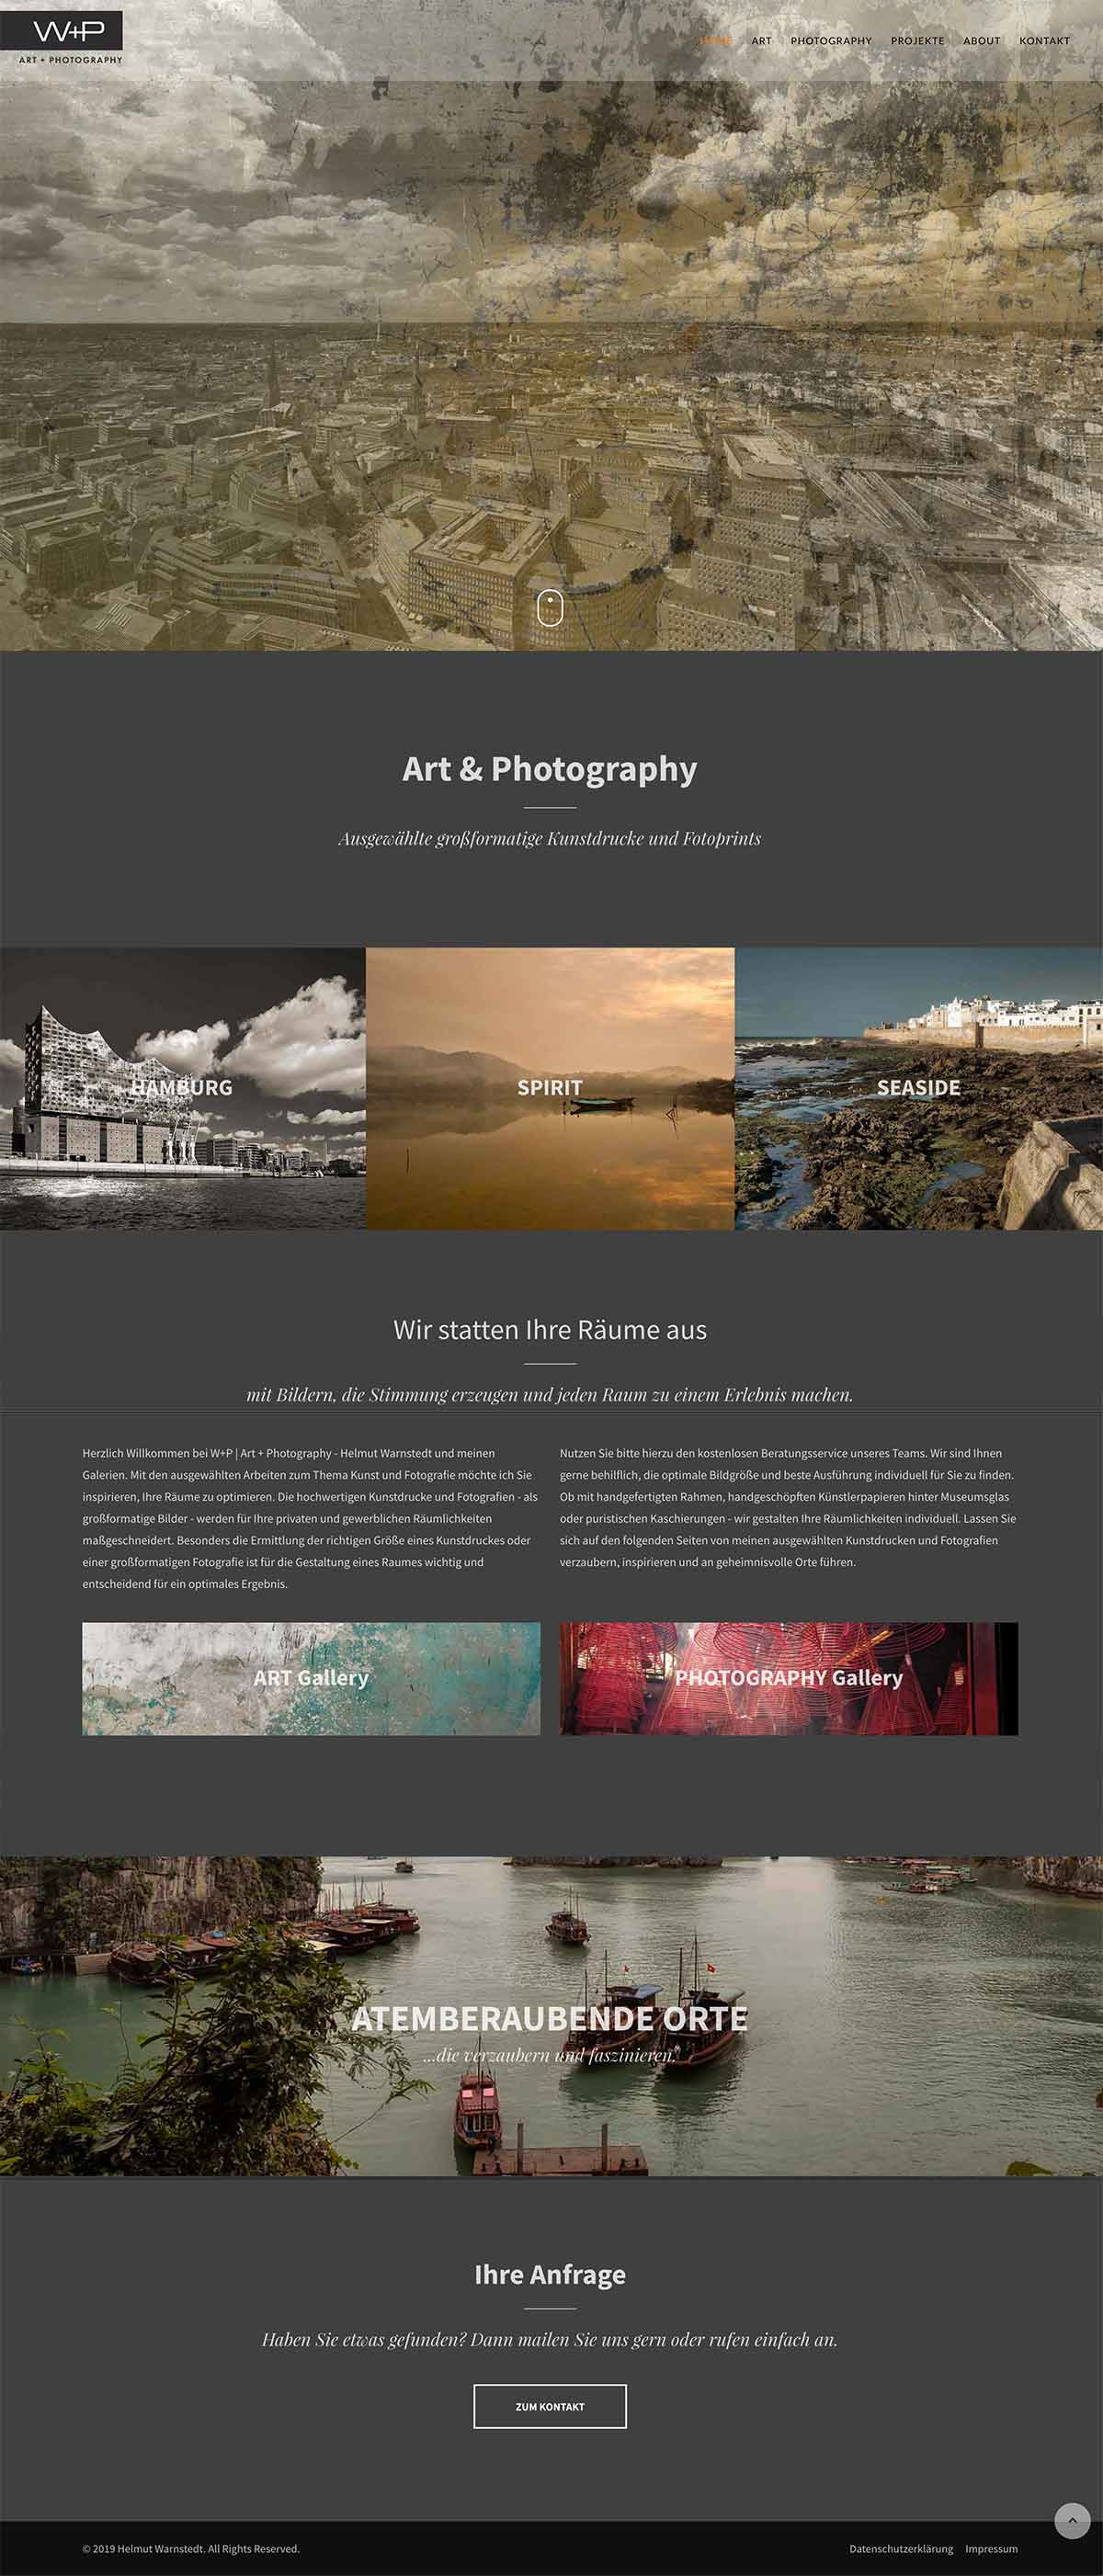 wp-art-photography-webdesign-lab-01.jpg